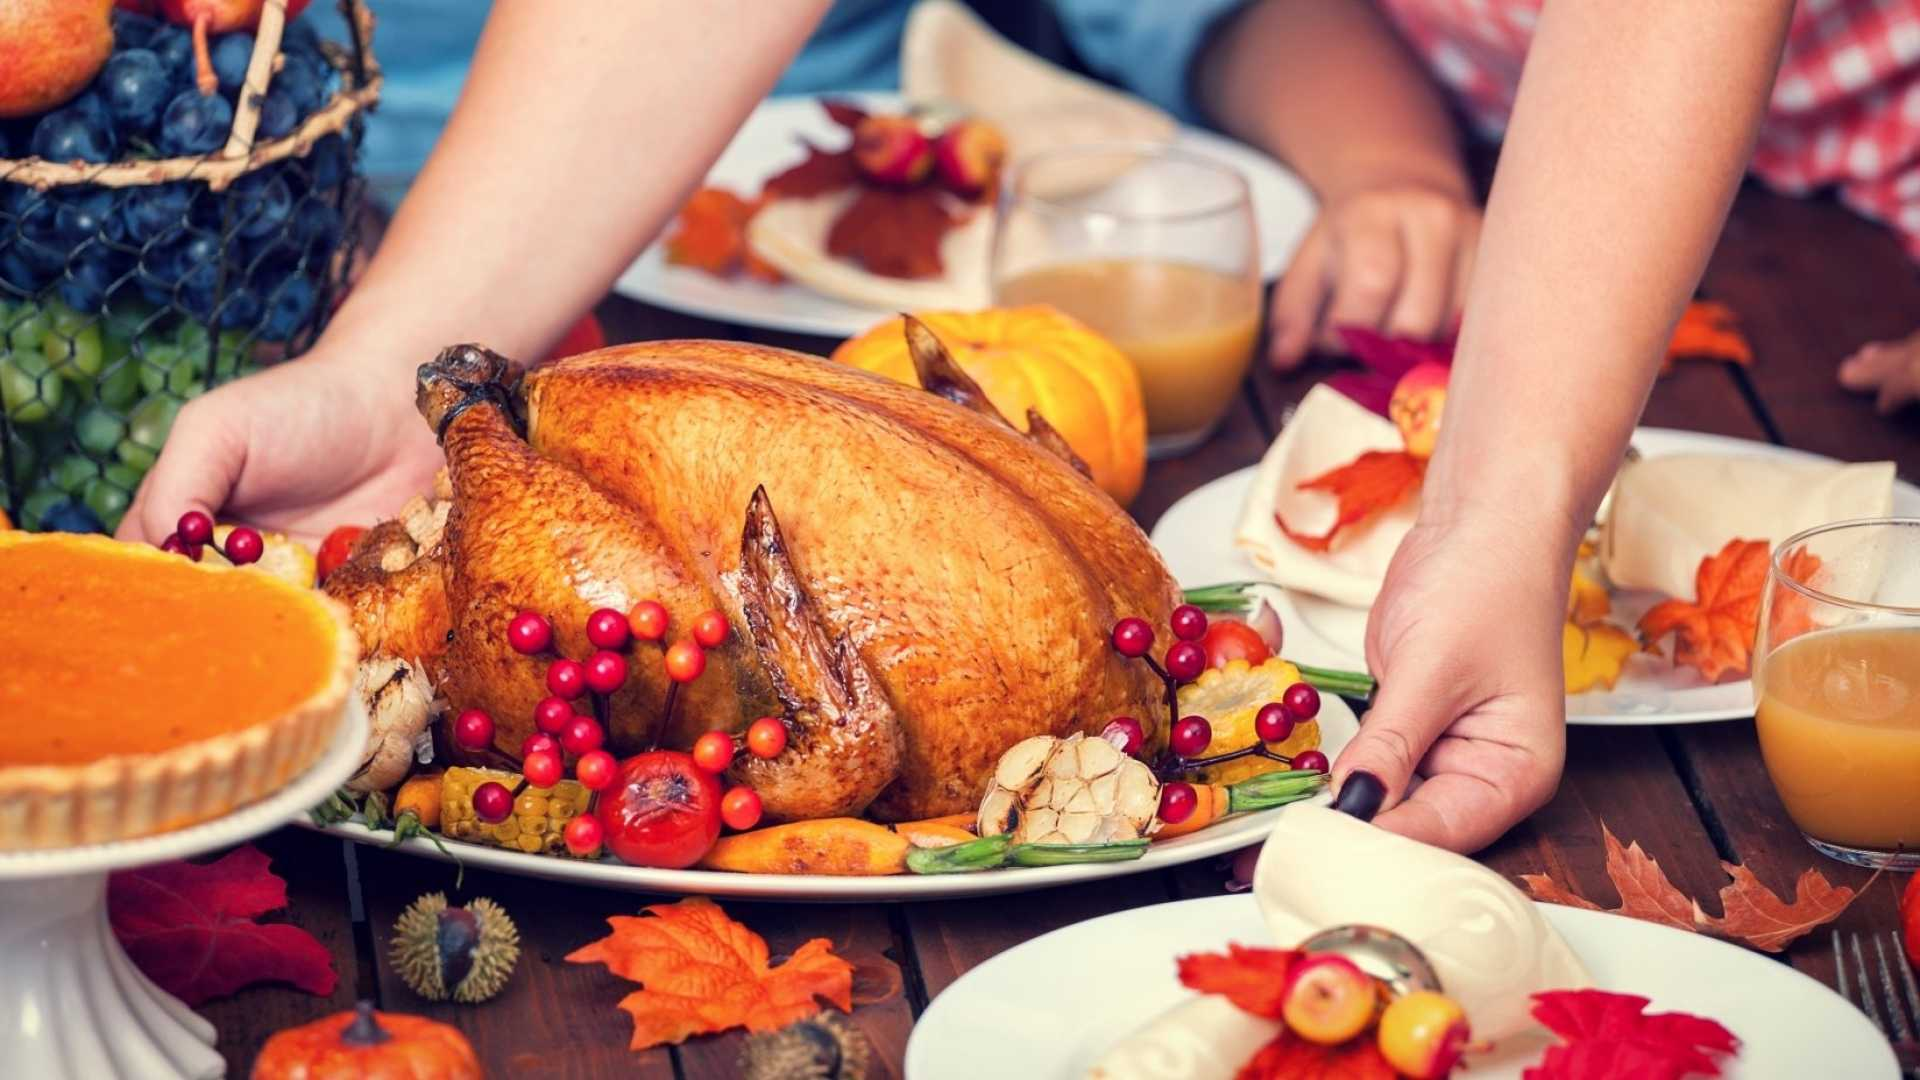 7 Ways to Handle Politics With Your Family This Thanksgiving (Without Getting Upset)